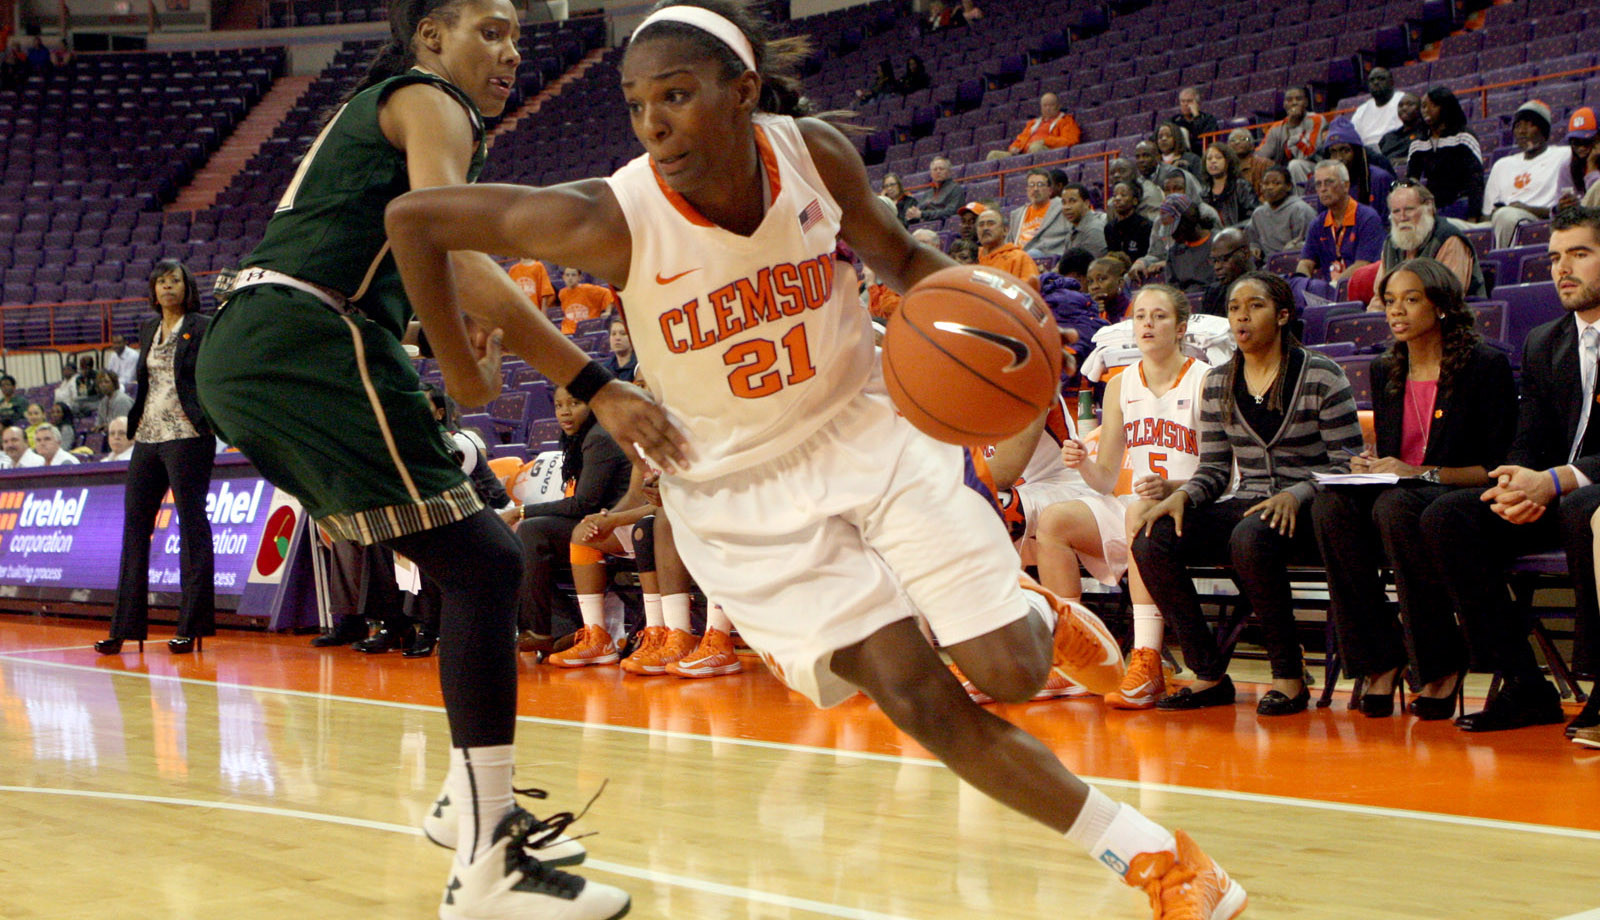 Clemson Drops Close One on Saturday Night